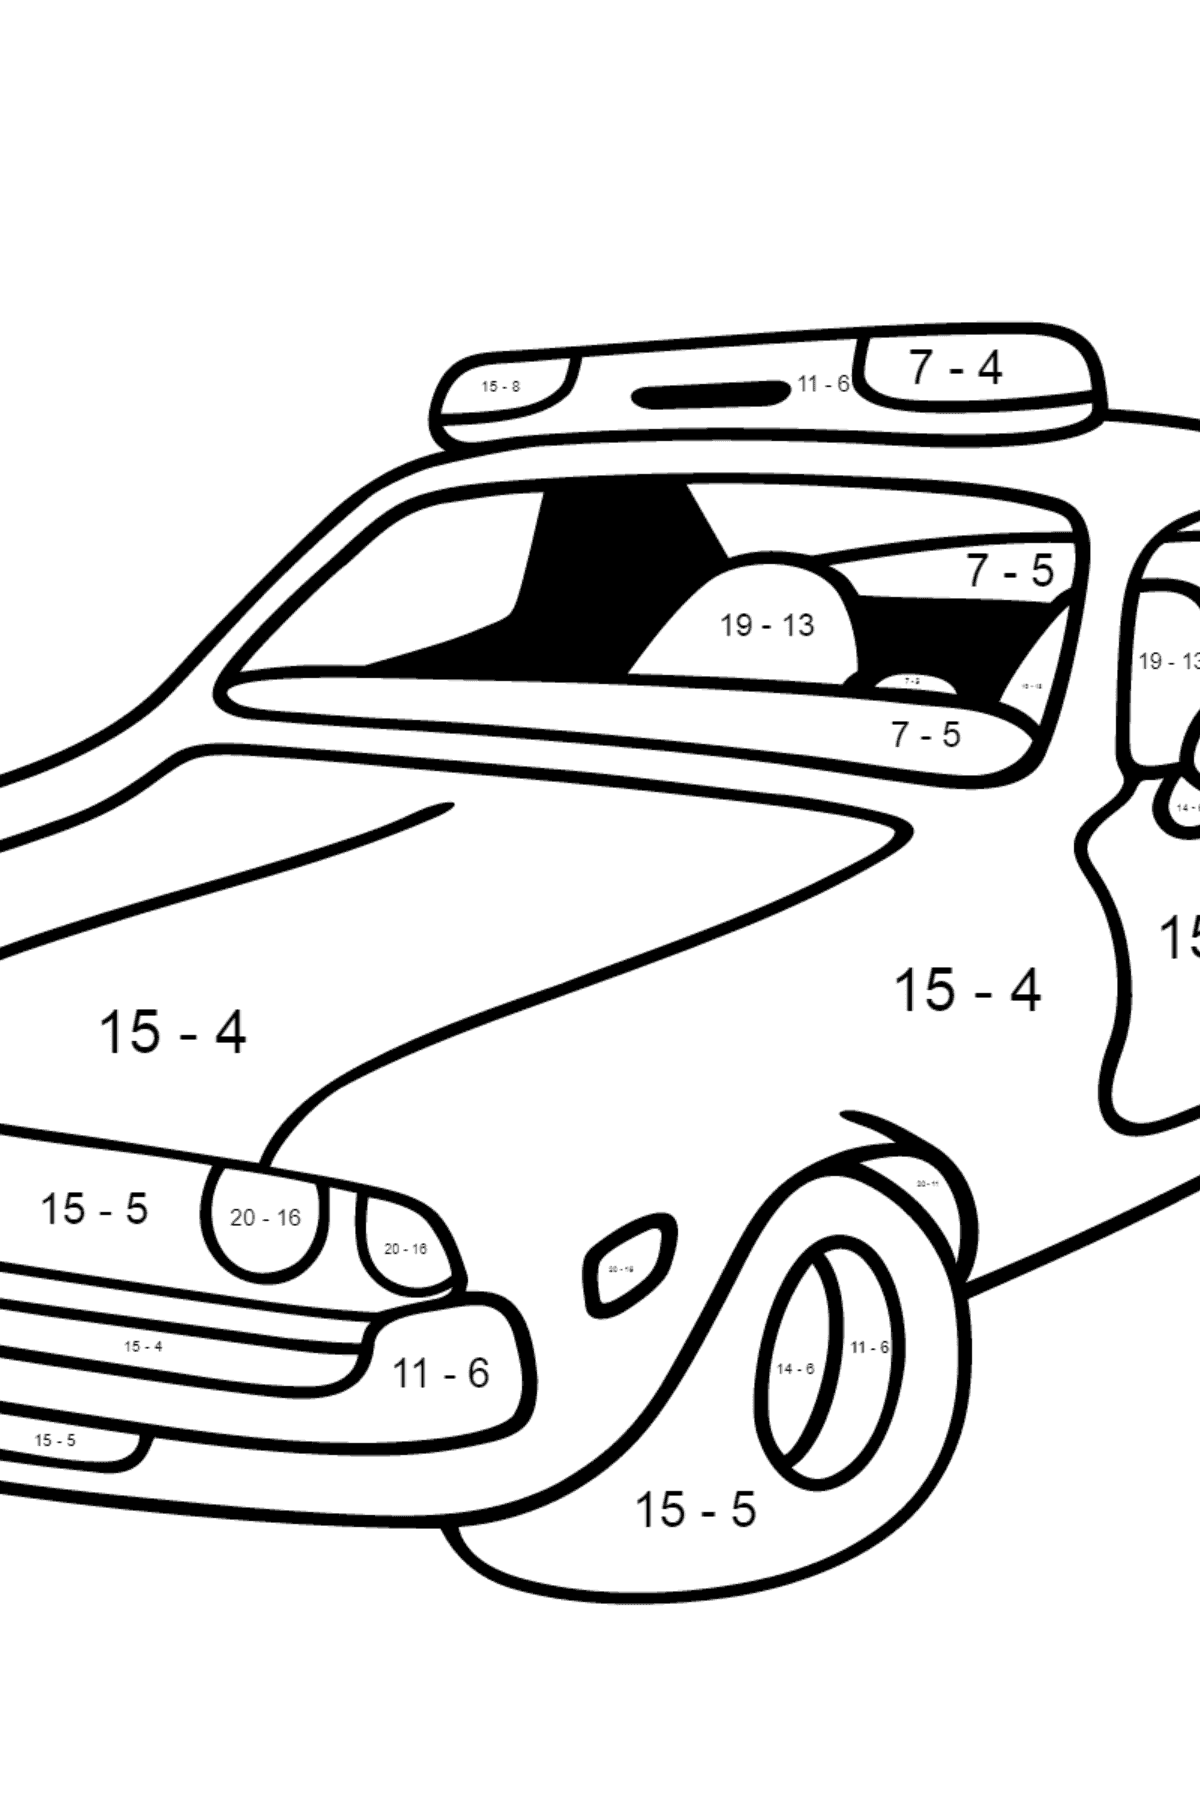 Coloring Page - A Red Police Car for Children  - Color by Number Substraction